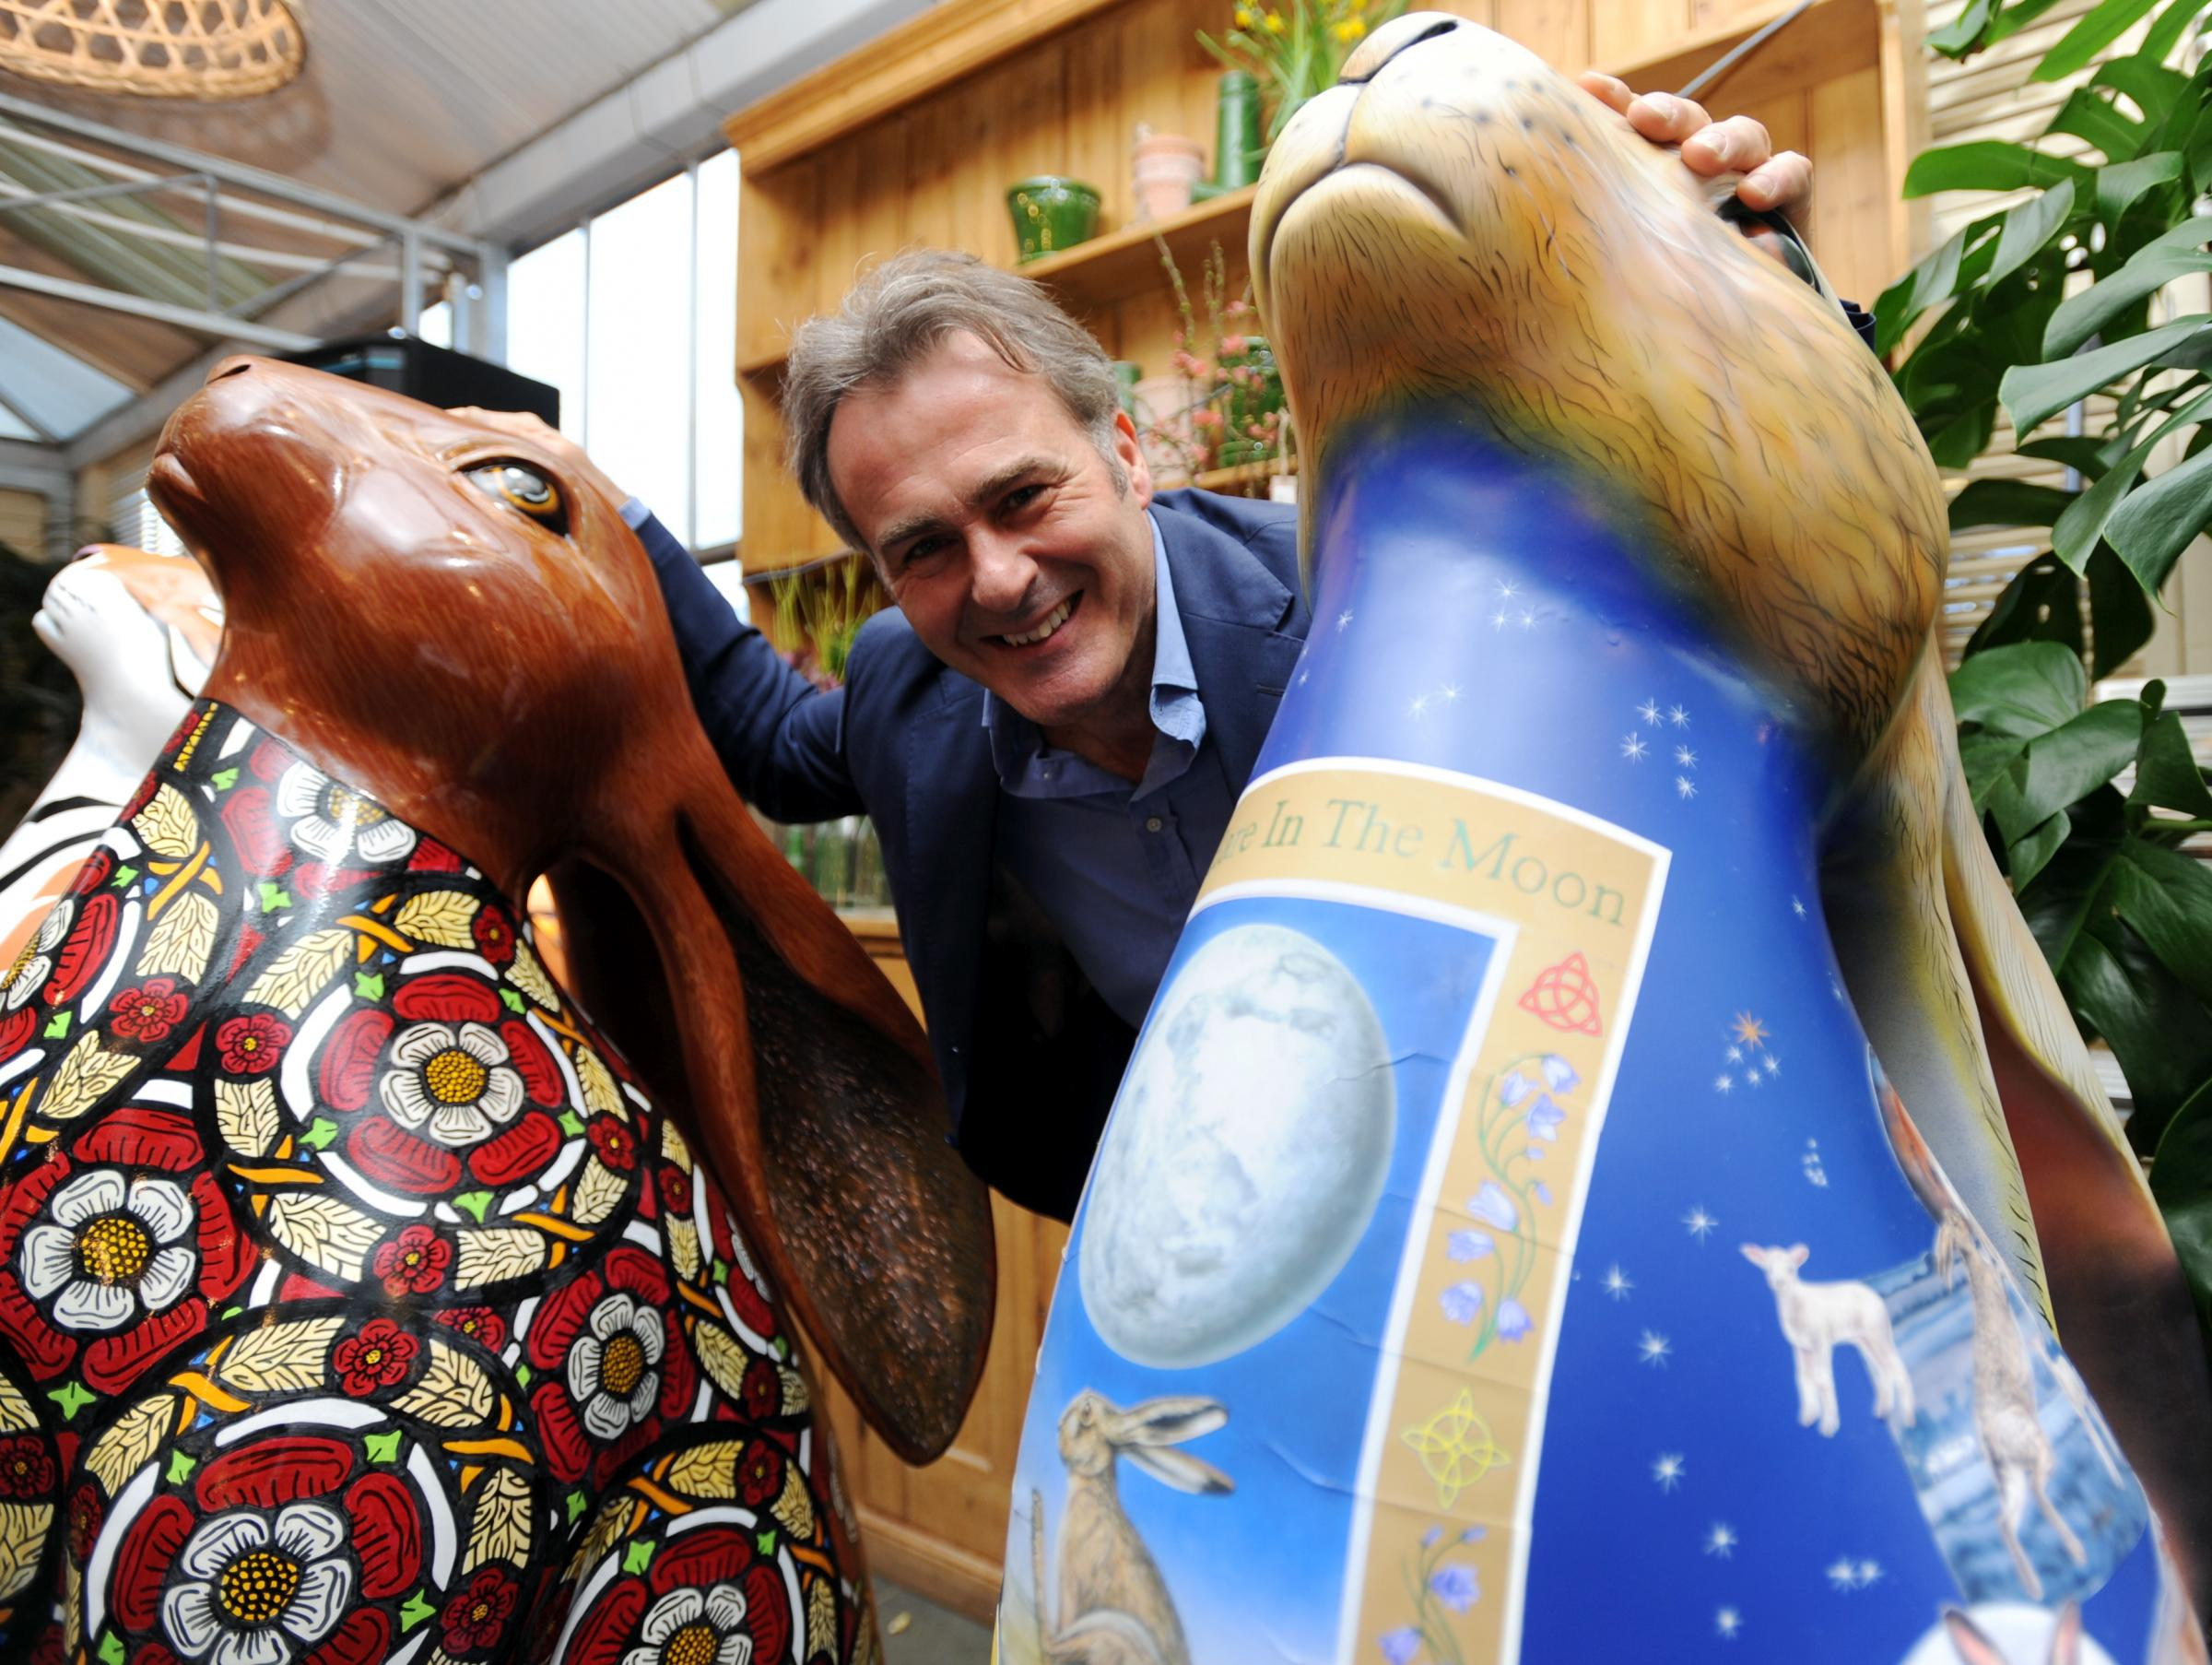 Paul Martin of Flog It at the Cotswold Hare Trail Meet the Hares Preview Fundraising Event held at the Burford Garden Company in Burford,Oxfordshire, England on Thursday 9th March. The launch is in Woodstock on the 22nd March, with the public trail starti